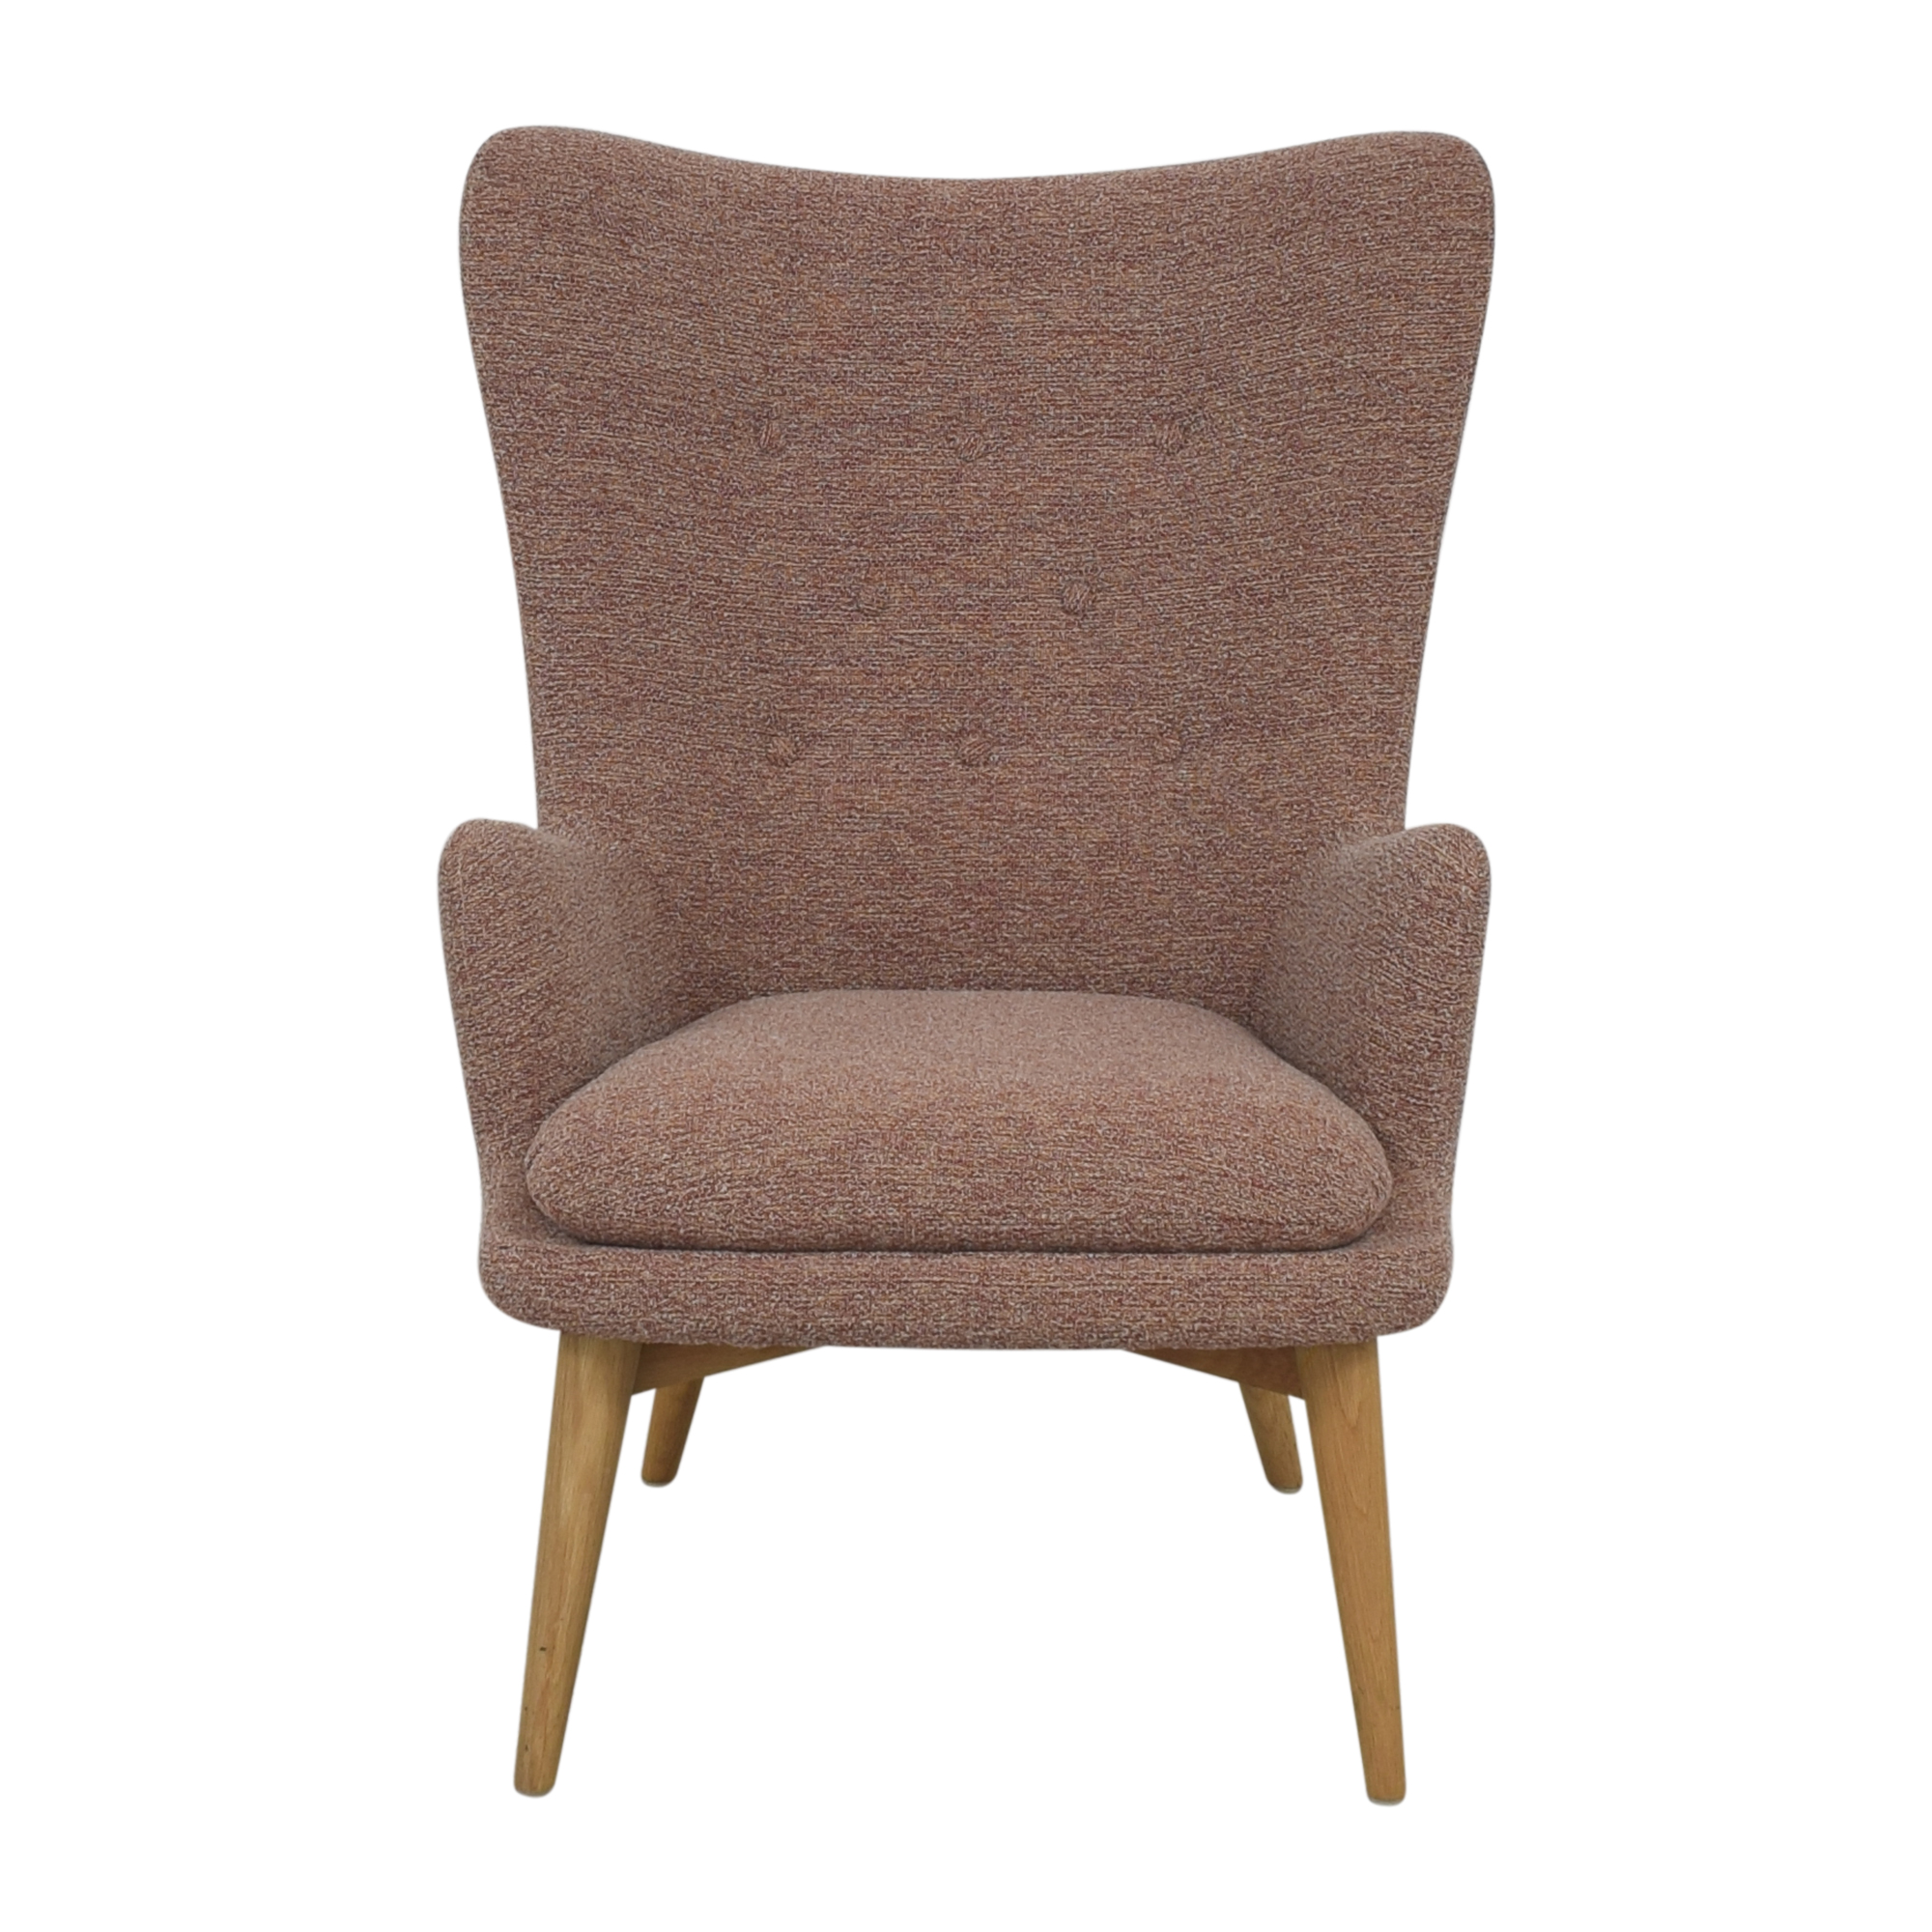 65 Off West Elm West Elm Bliss Down Filled Chair And A Half Chairs